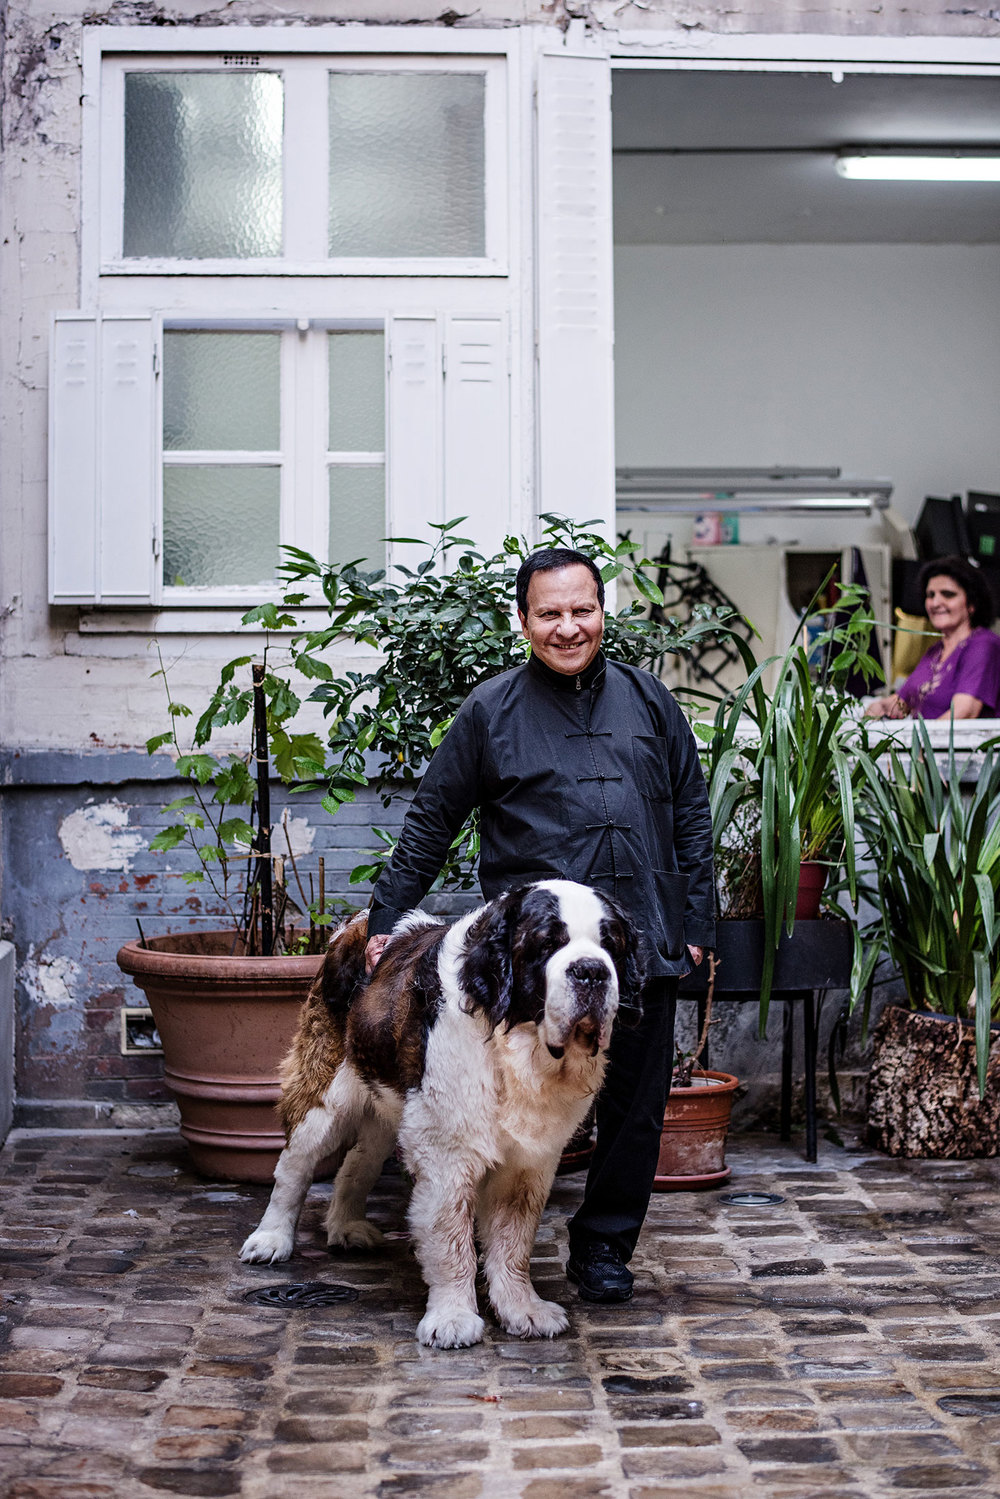 Alaïa and his St. Bernard, Didine, in Paris. (Photo: Franck Juery/Surface)